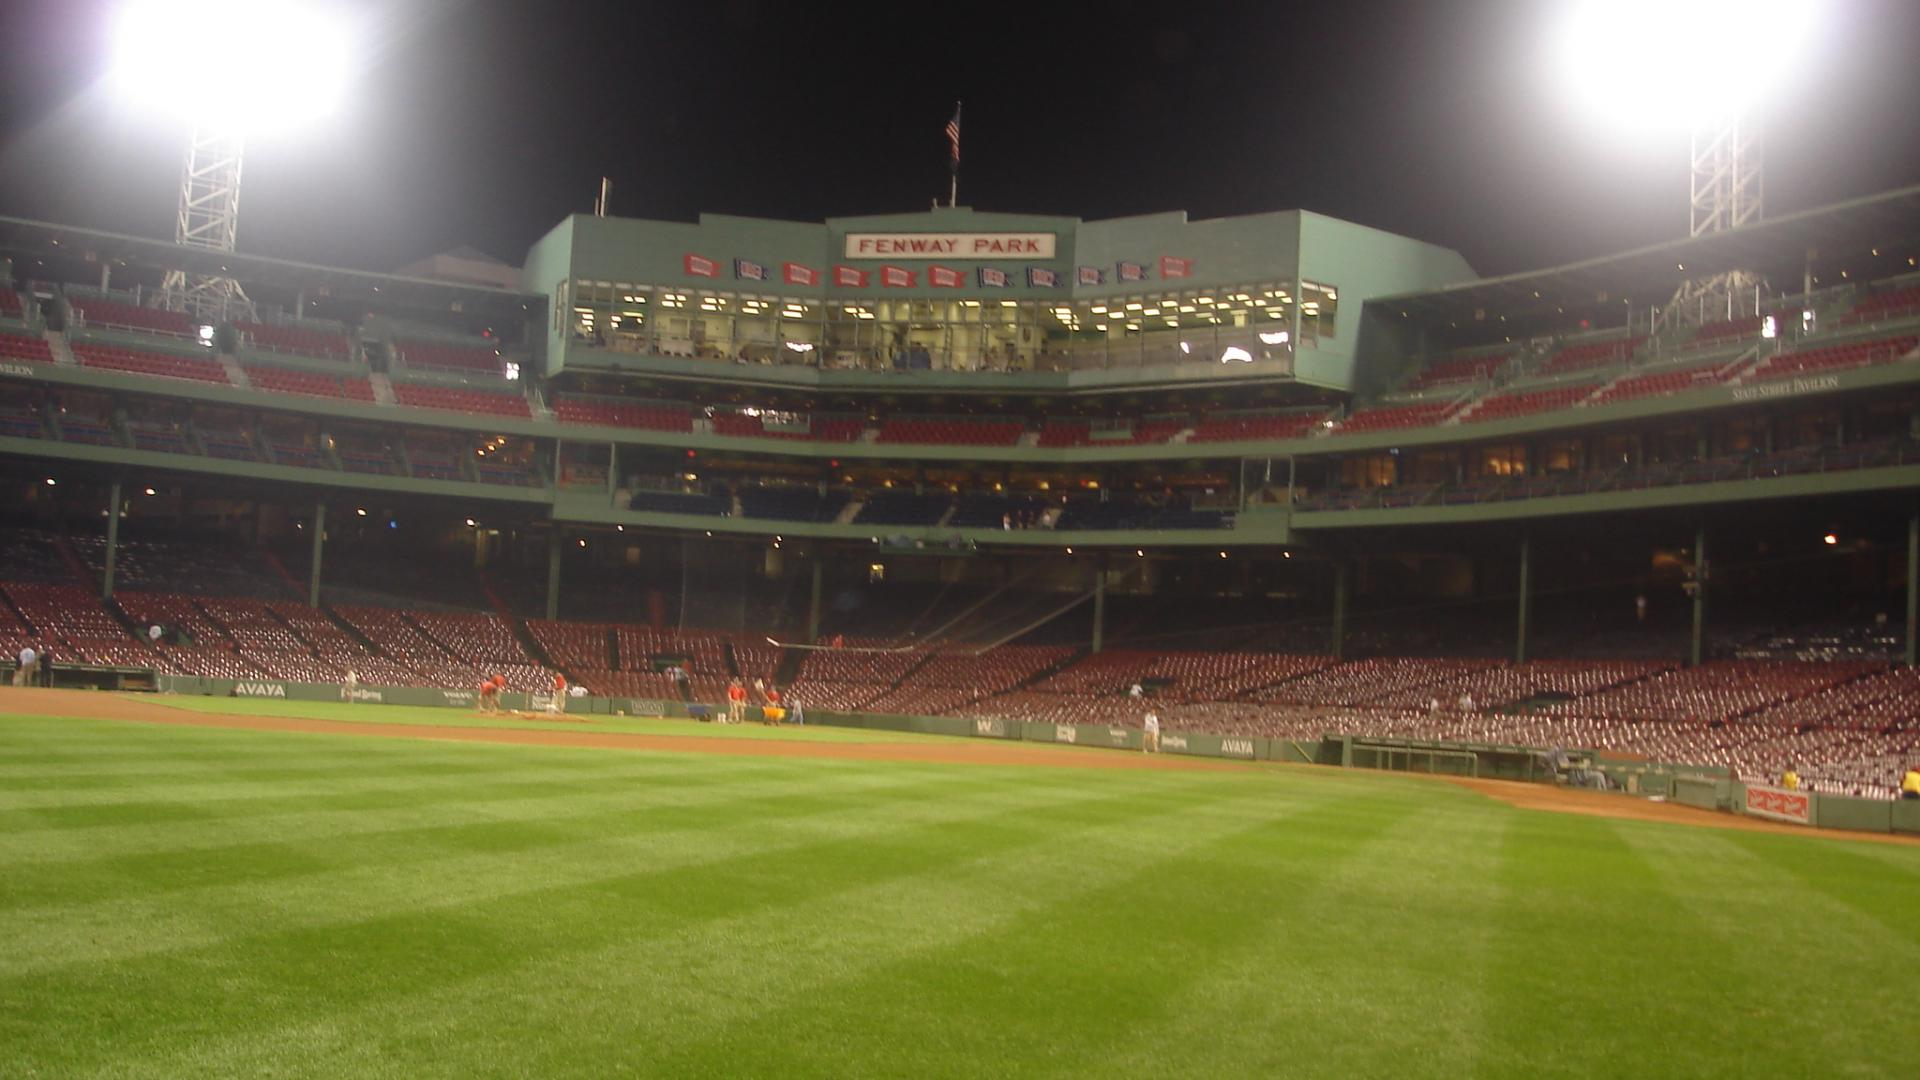 fenway park wallpapers hd page 3 of 3 wallpaper